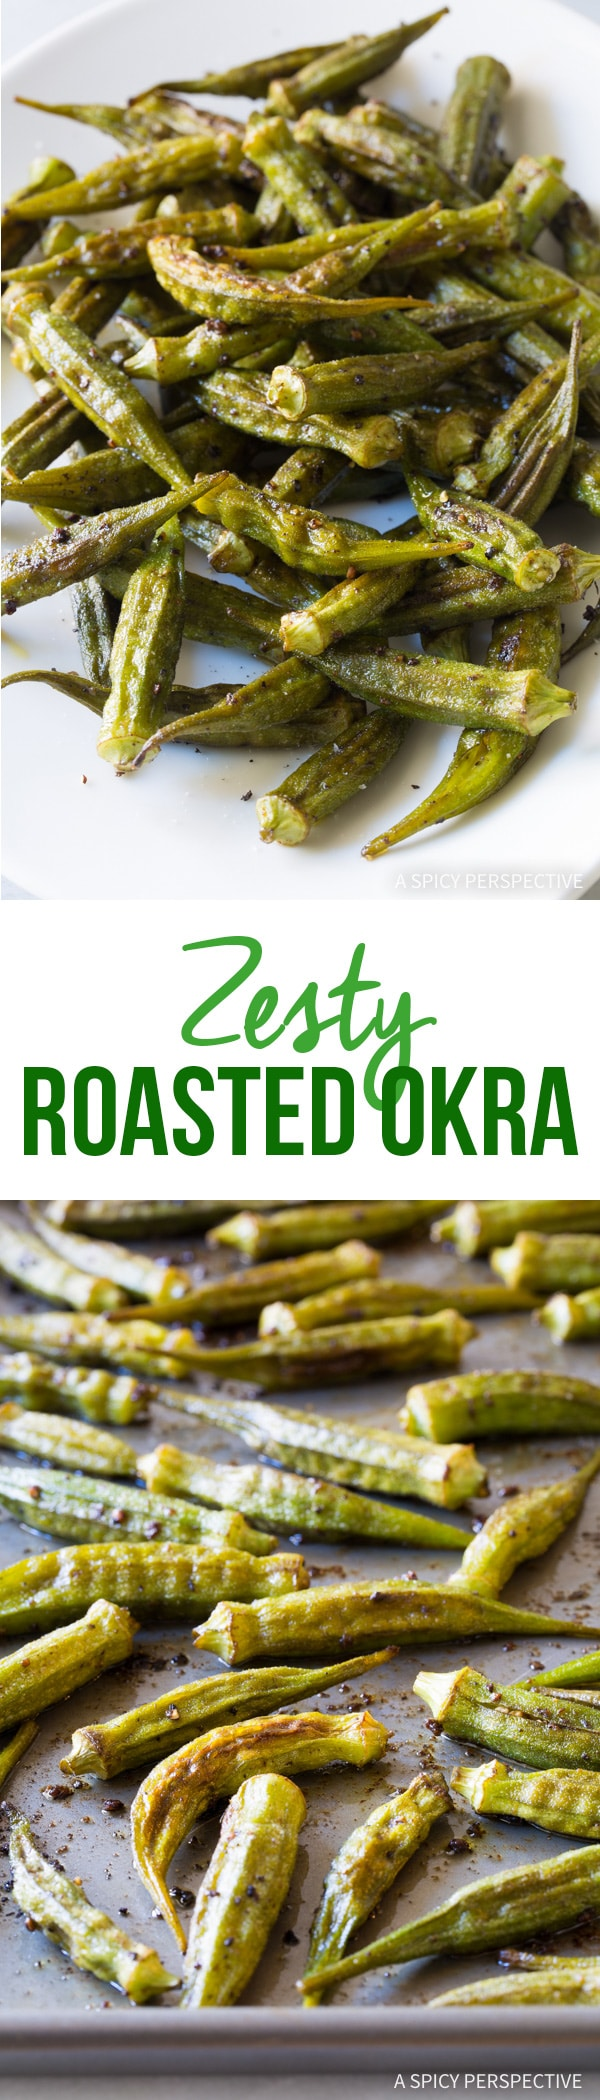 Zesty Roasted Okra A Spicy Perspective